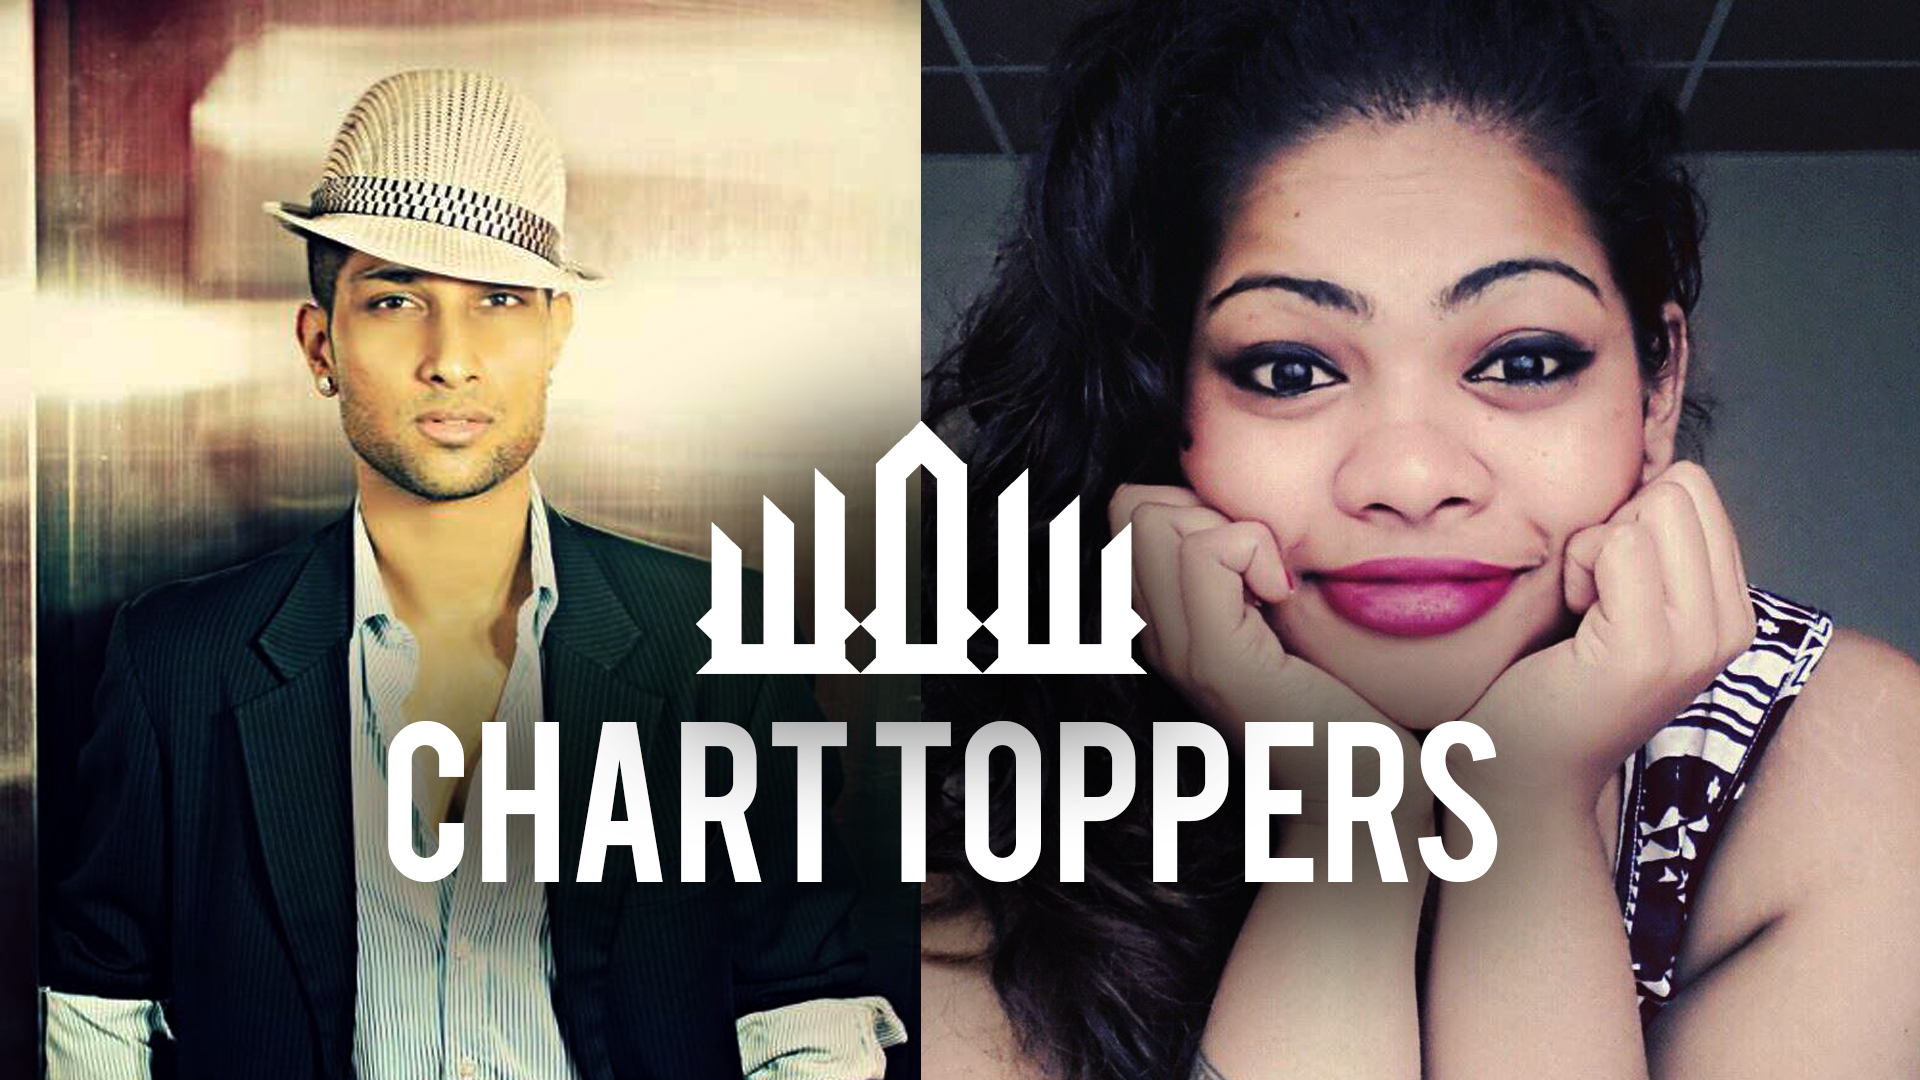 WOW HAPPY STORIES – CHART TOPPERS